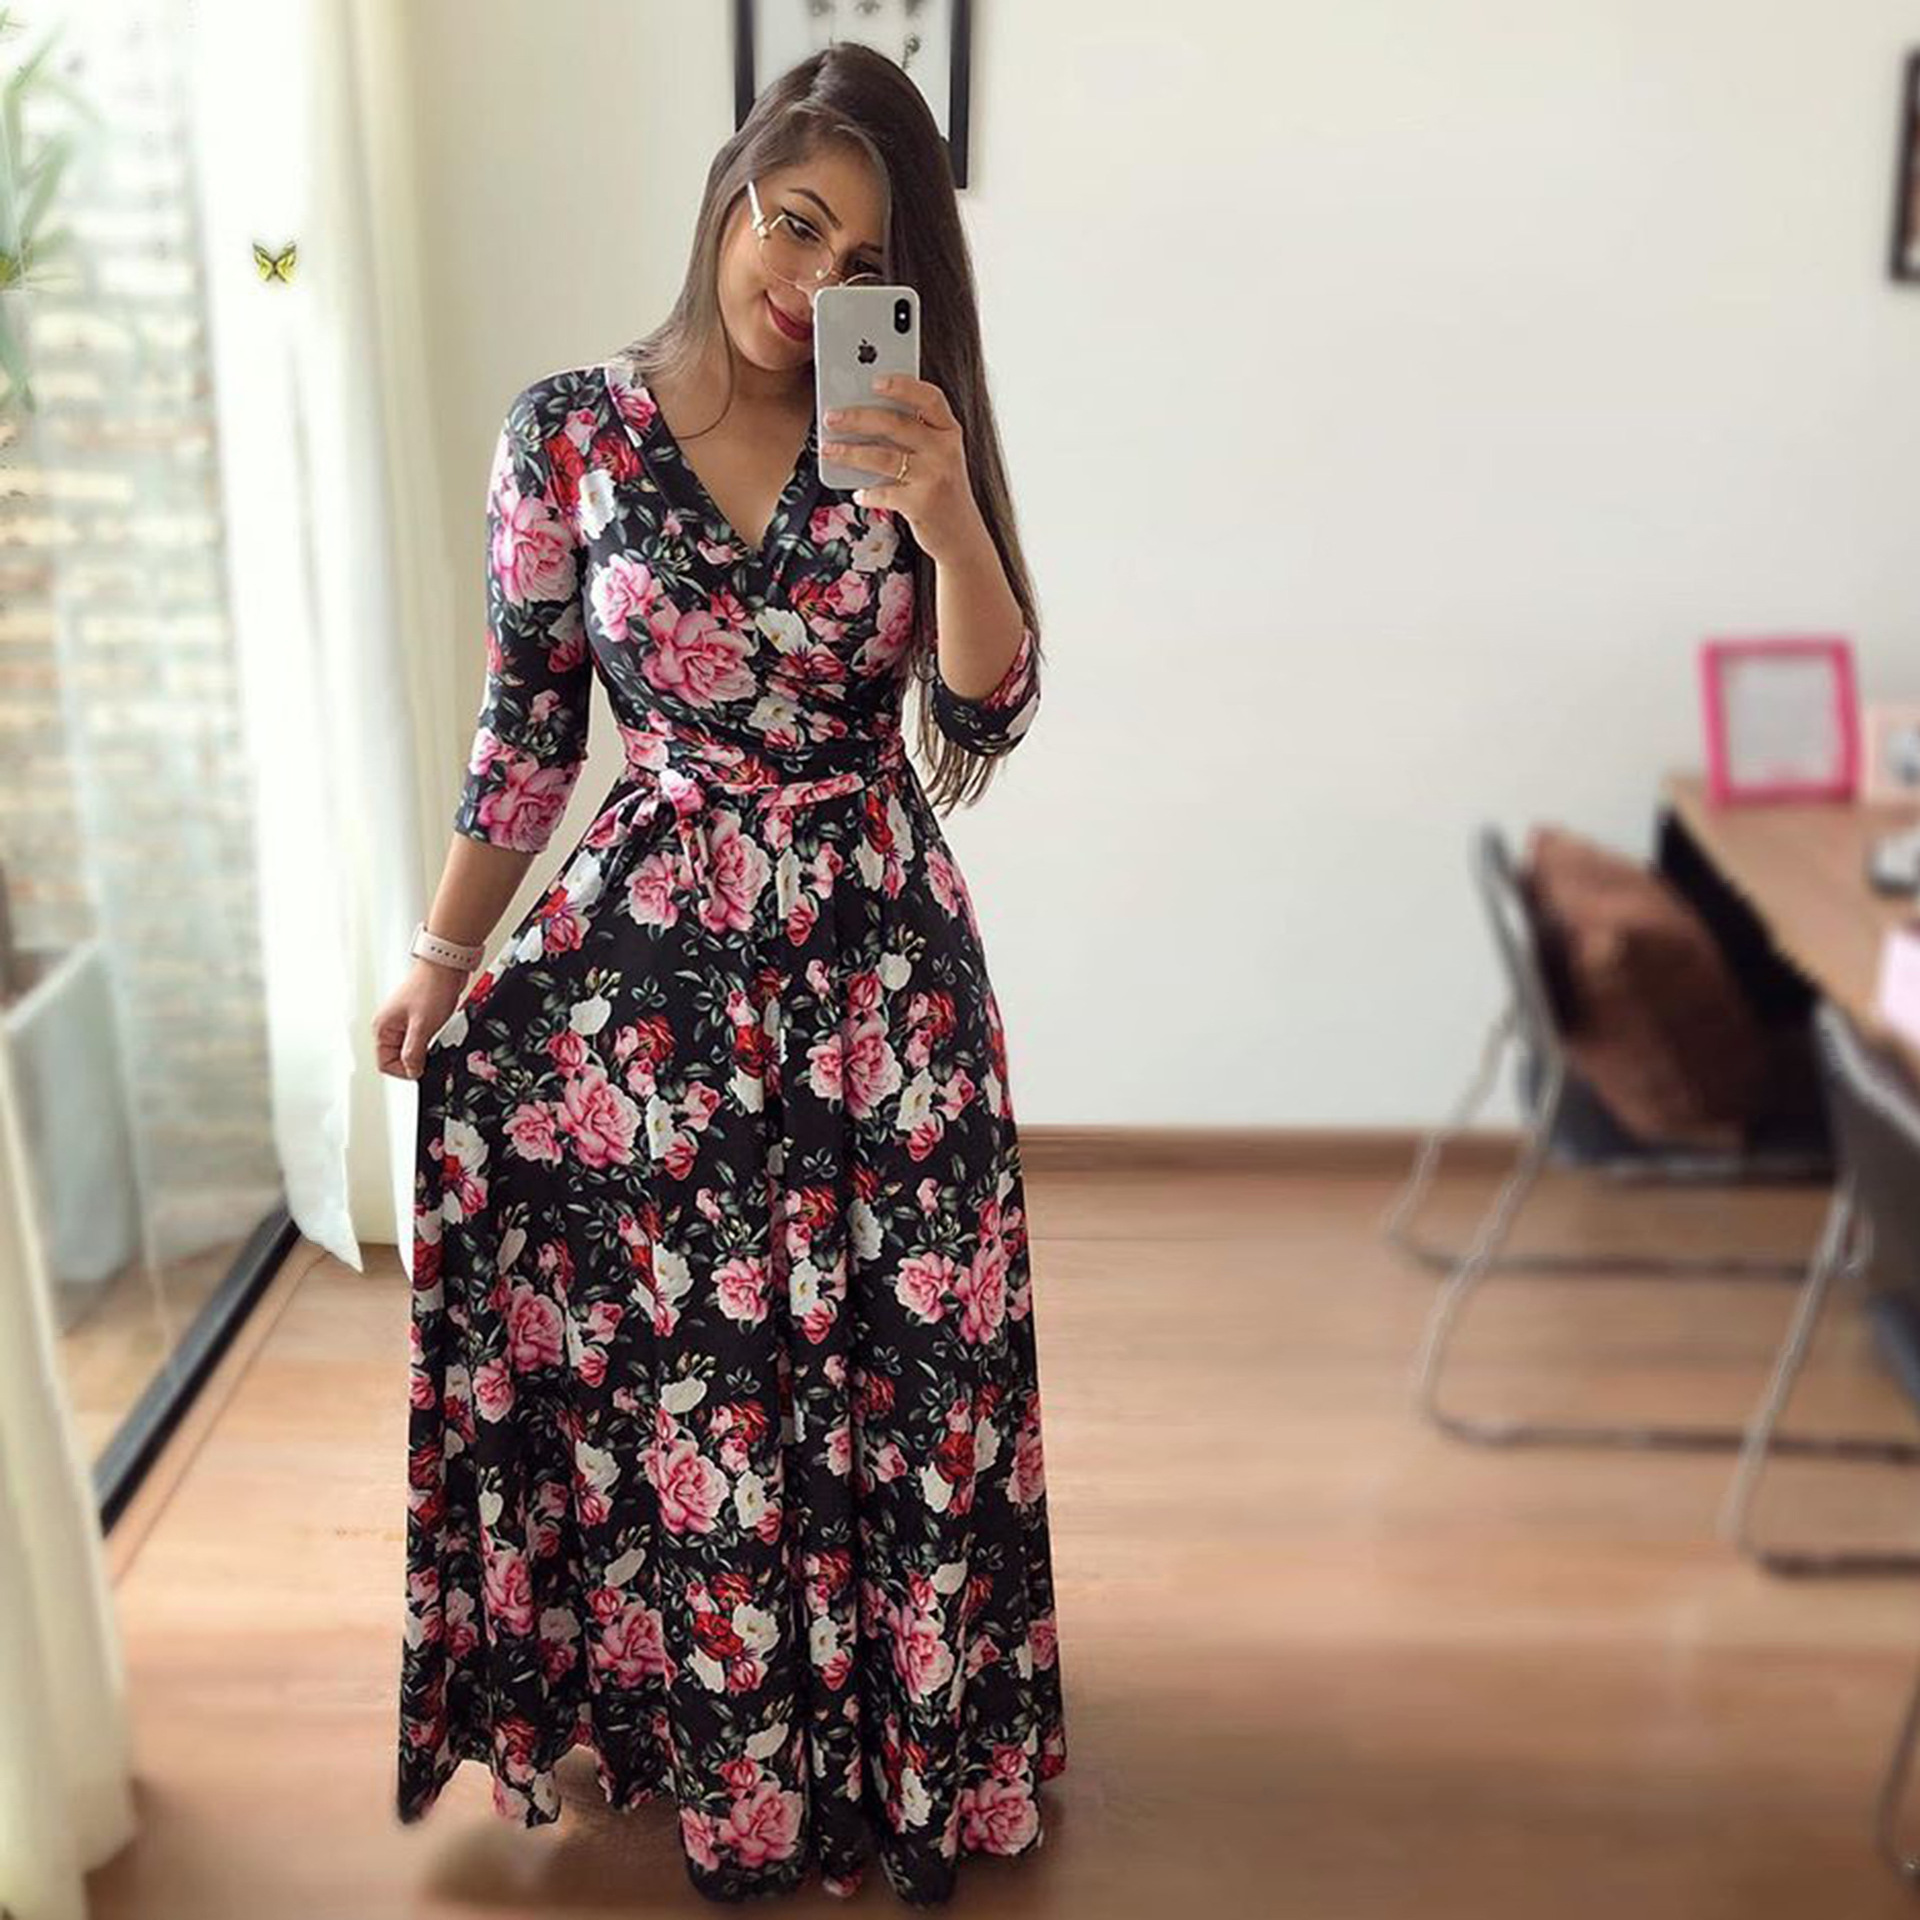 H22db19efec814bd0b0c503d62a11a09fJ - Oufisun Spring Sexy Deep V Neck Women's Dress Bohemia Tunic Maxi Dresses Elegant Vintage Flowers Print Dress Vestidos Plus Size